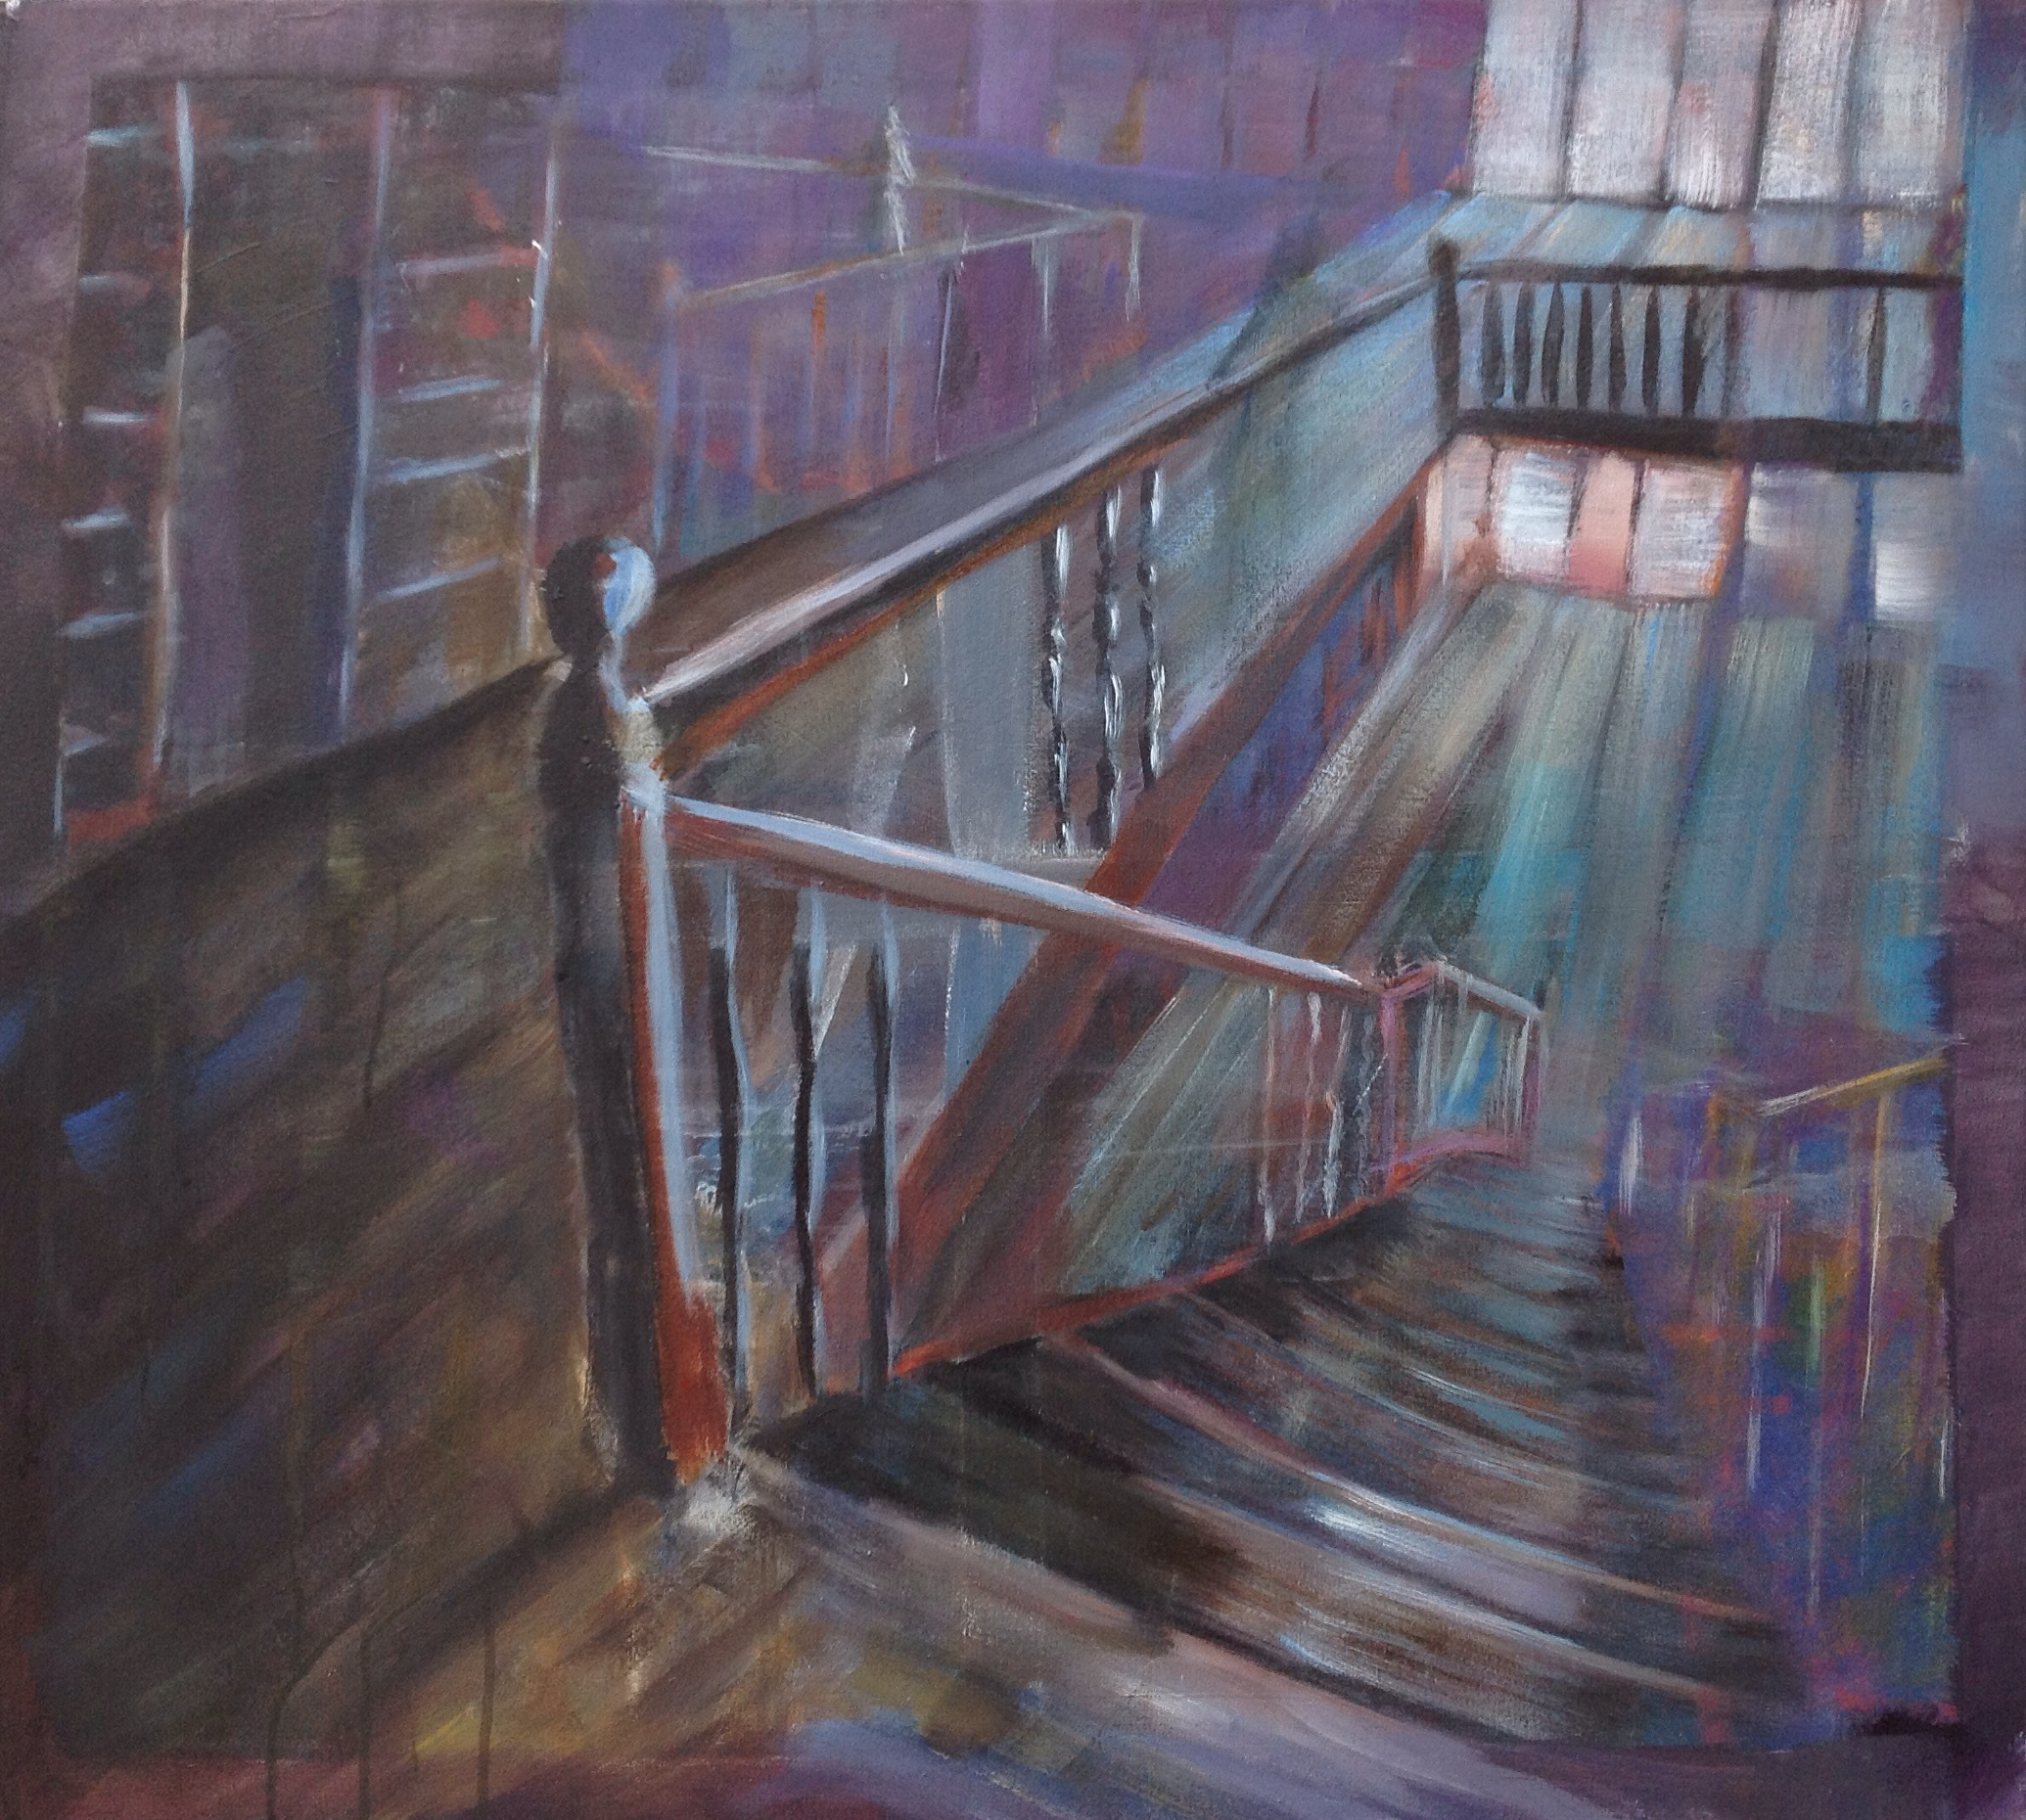 ghosts by the stairs